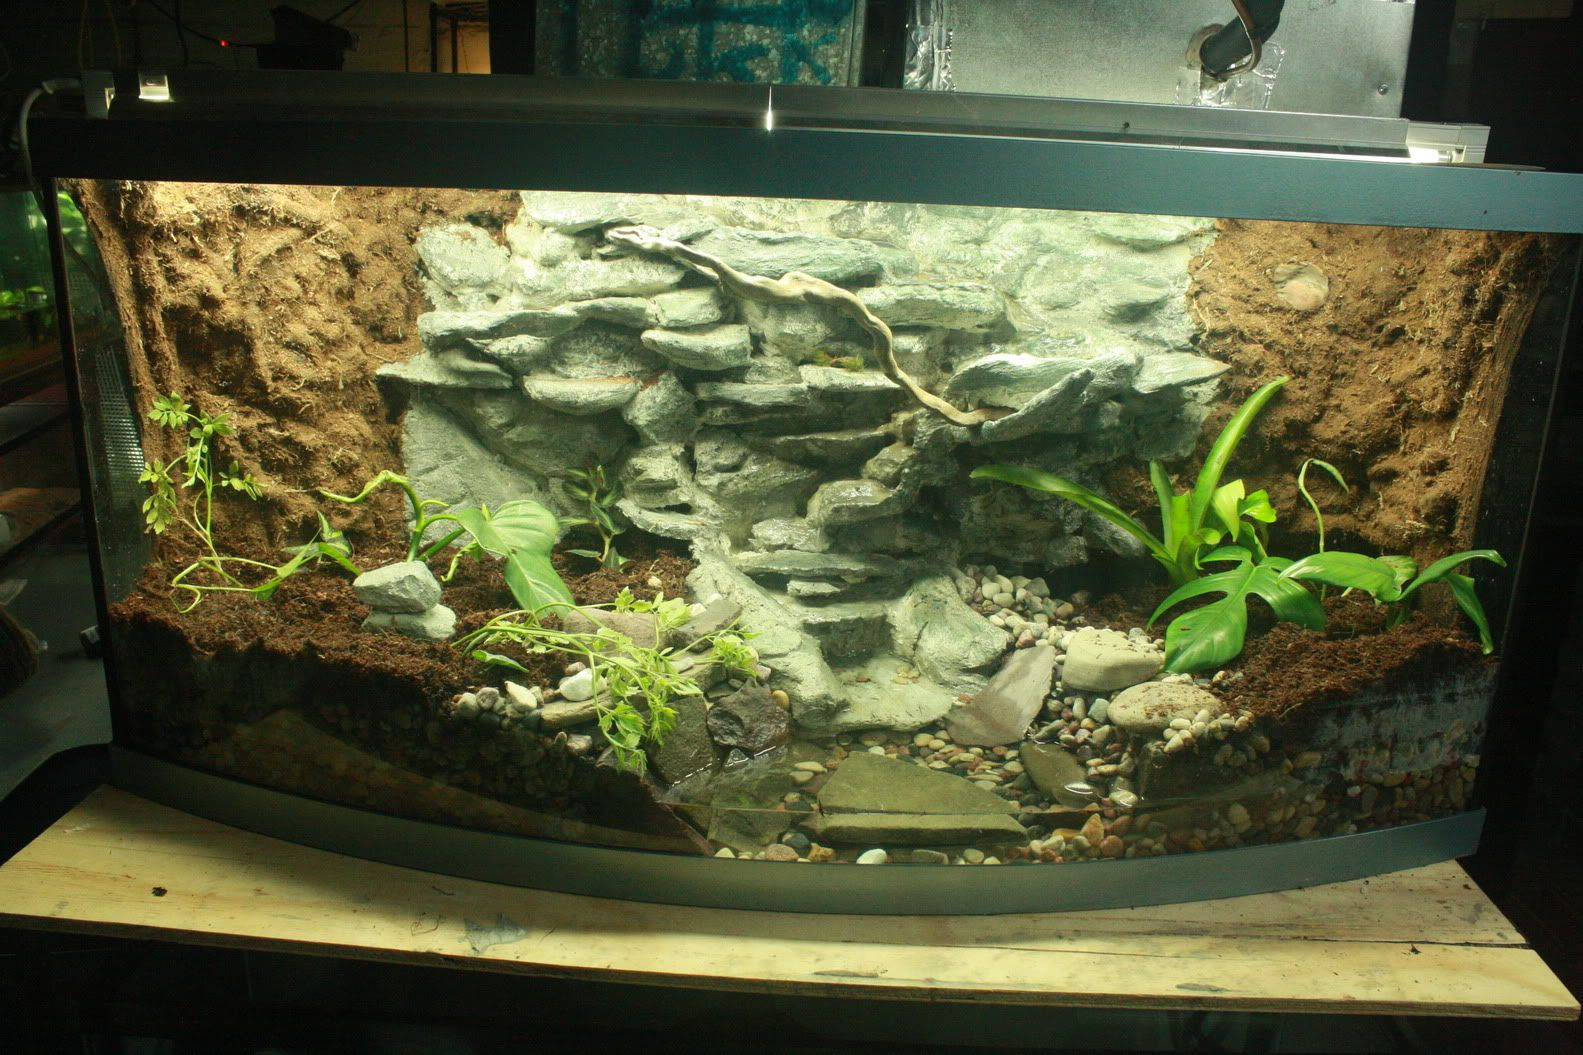 72 bowfront unplanted photo dart frog ideas for Amazon fish tanks